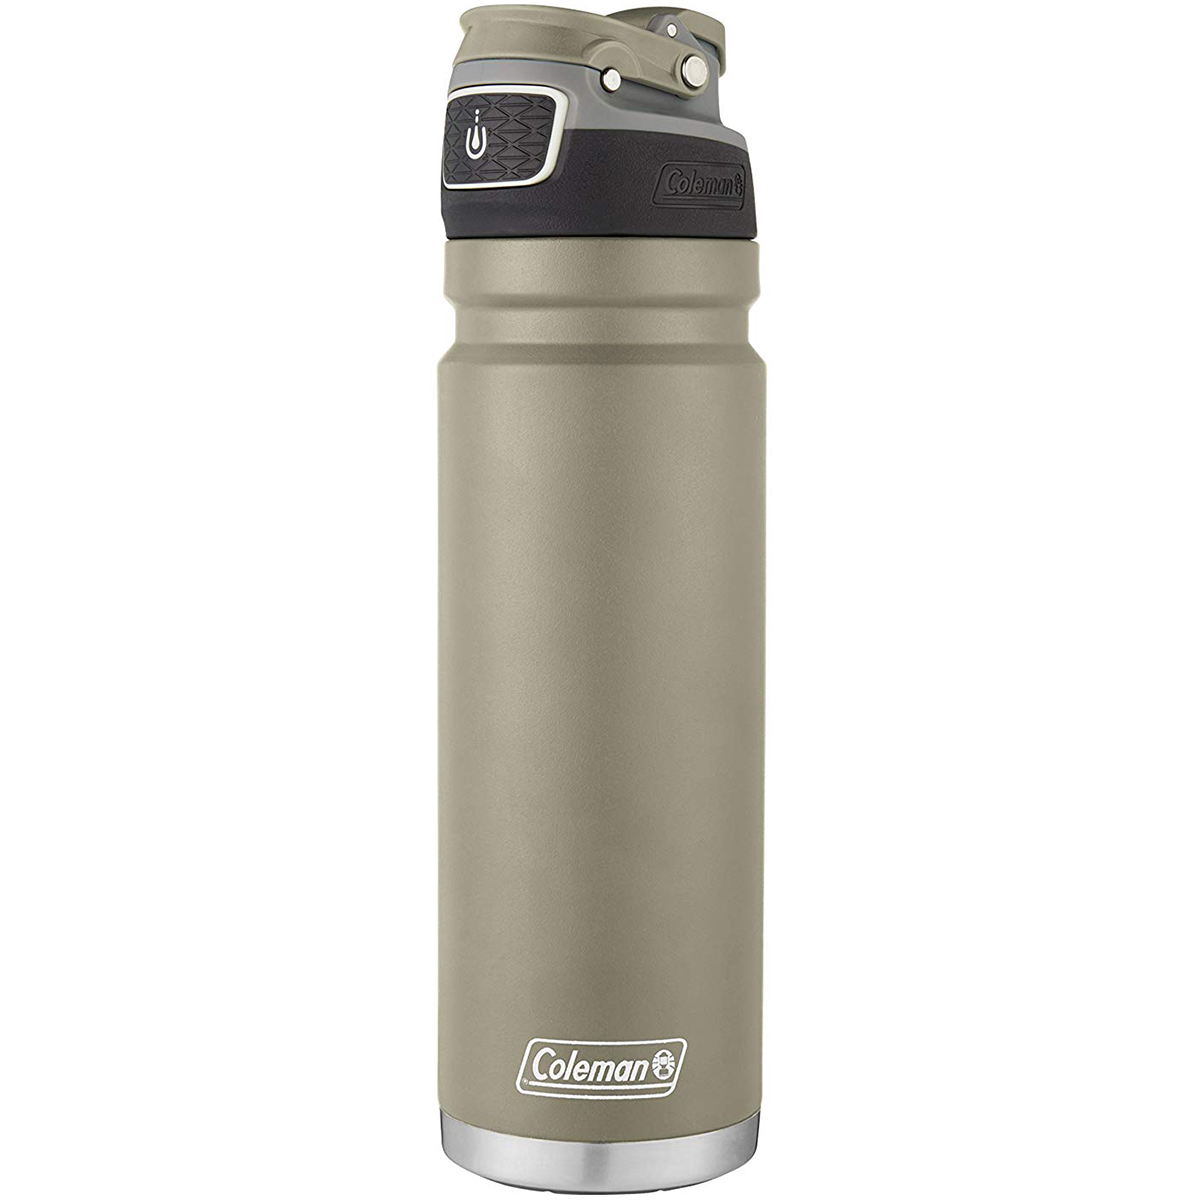 Coleman-24-oz-Free-Flow-Autoseal-Insulated-Stainless-Steel-Water-Bottle thumbnail 15